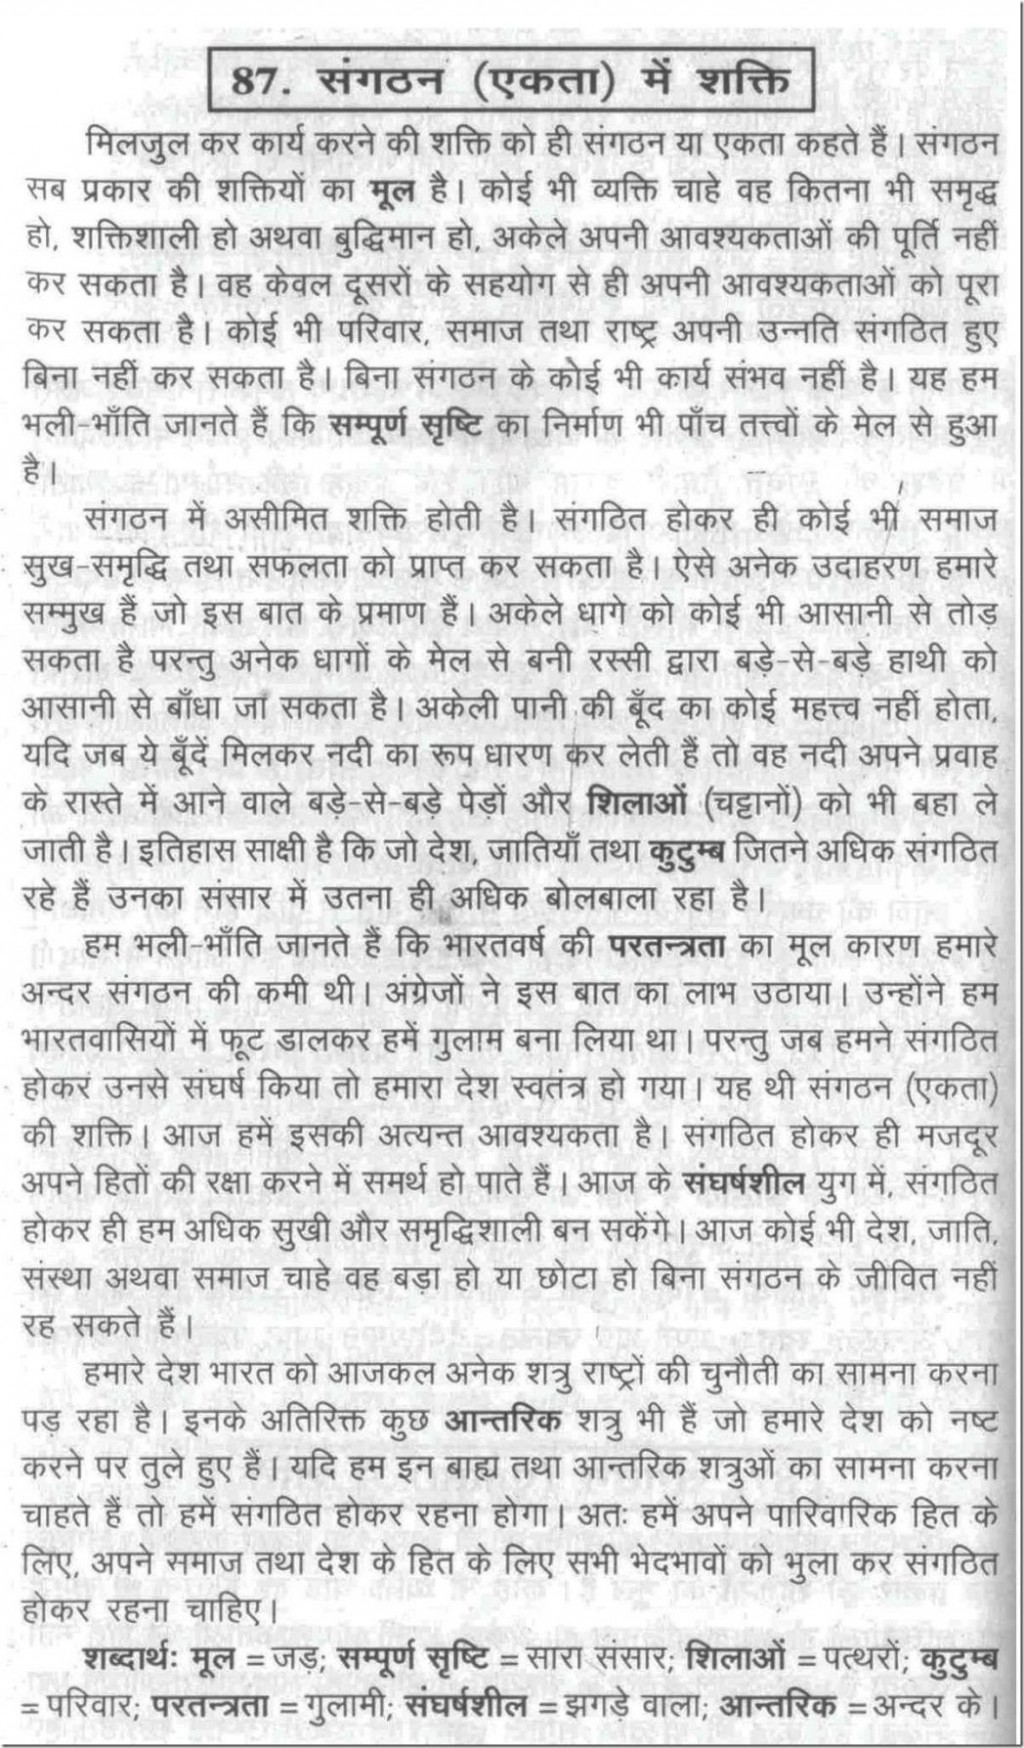 005 Essay On Class Unity Is Strength In Hindi I Cant Write My Personal 100087 Common App College Help 1048x1789 Fascinating Importance Of Diversity National Large